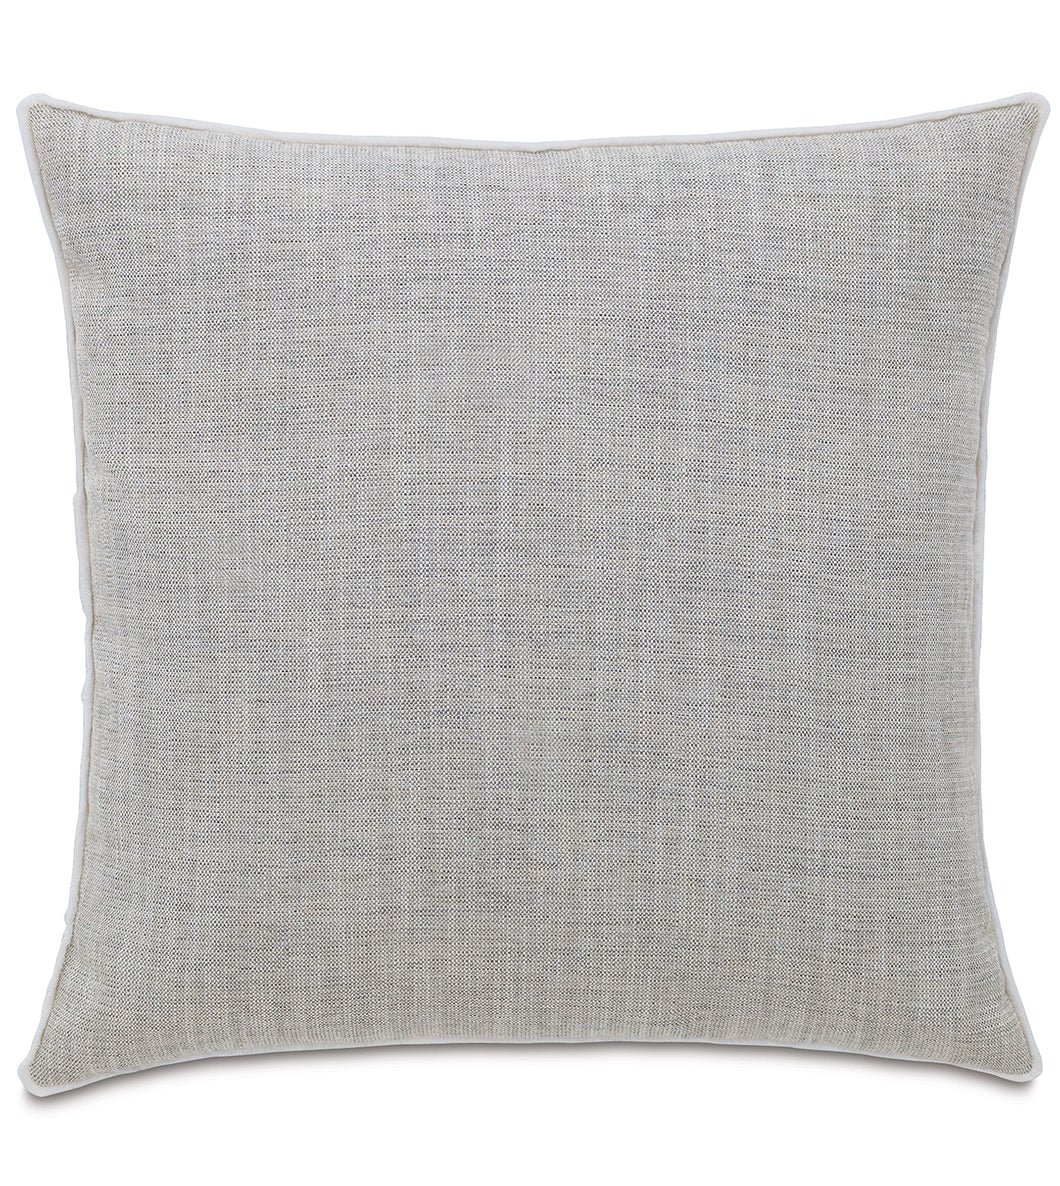 Light Gray Log Cabin Solid Jacquard Euro Sham With Cord 27